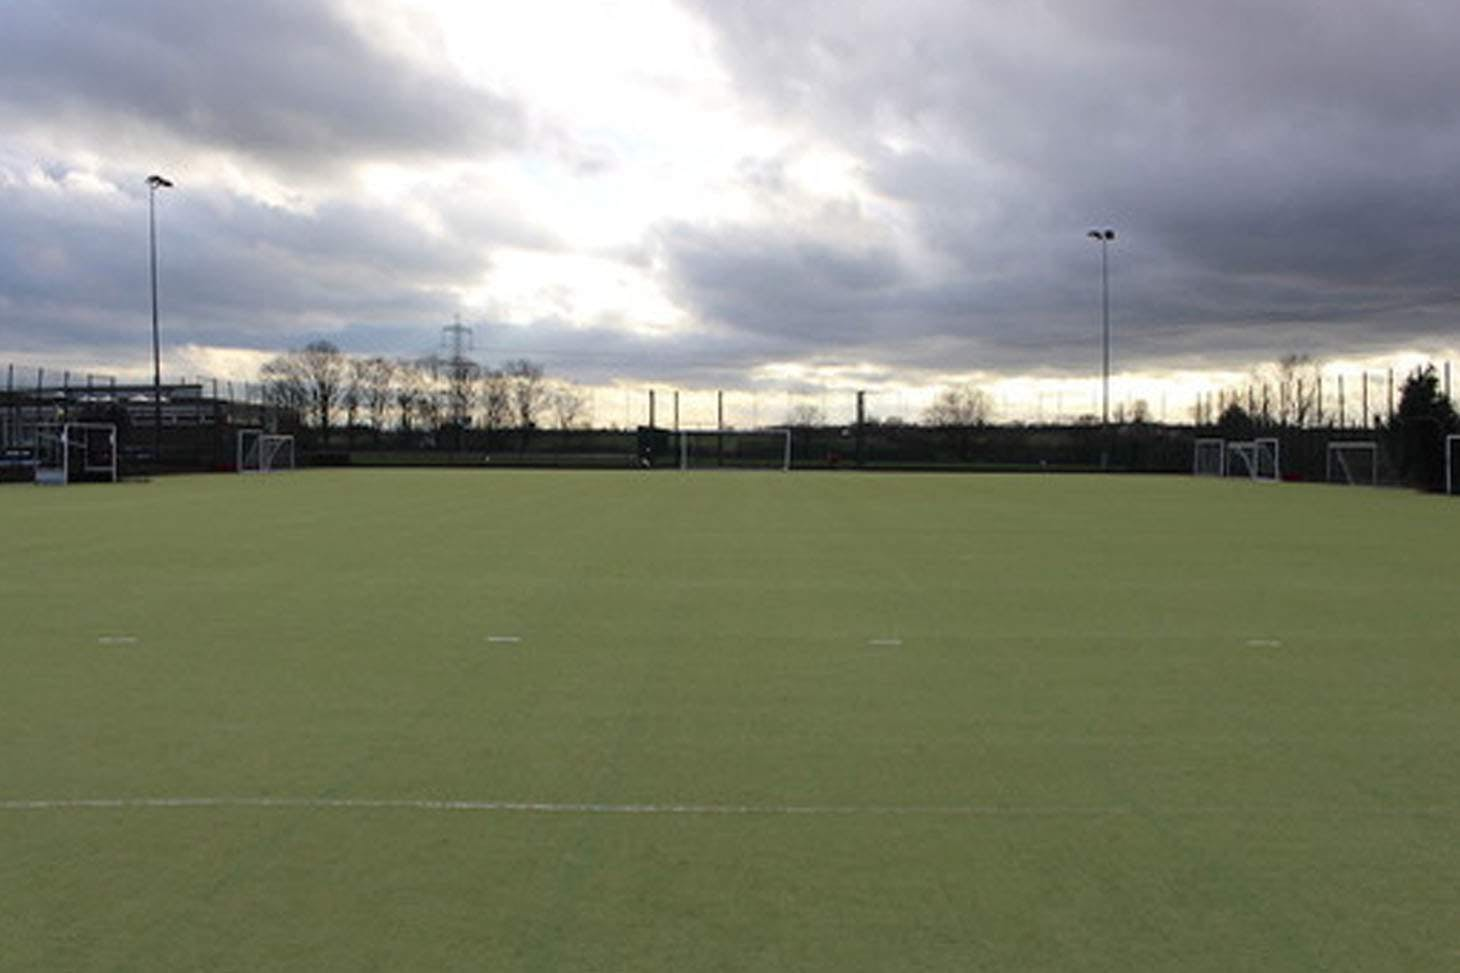 Egglescliffe School 11 a side | Astroturf football pitch